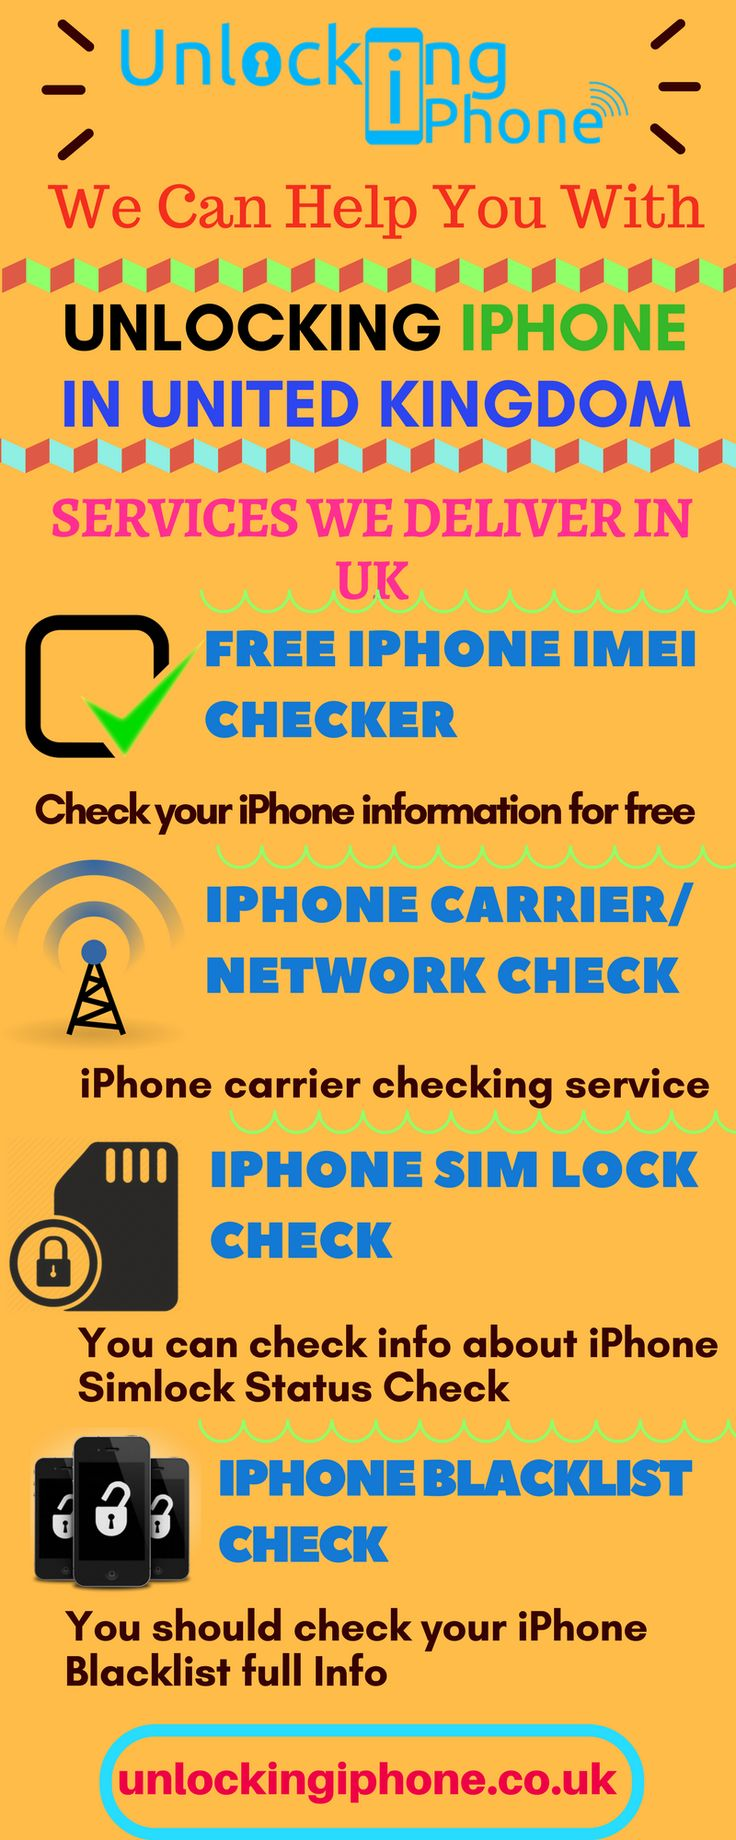 Unlocking Iphone offers different services in UK like Iphone SIM lock check, free Iphone IMEI Checker etc. Get help with these services in UK now. Browse our image to know more about these services.